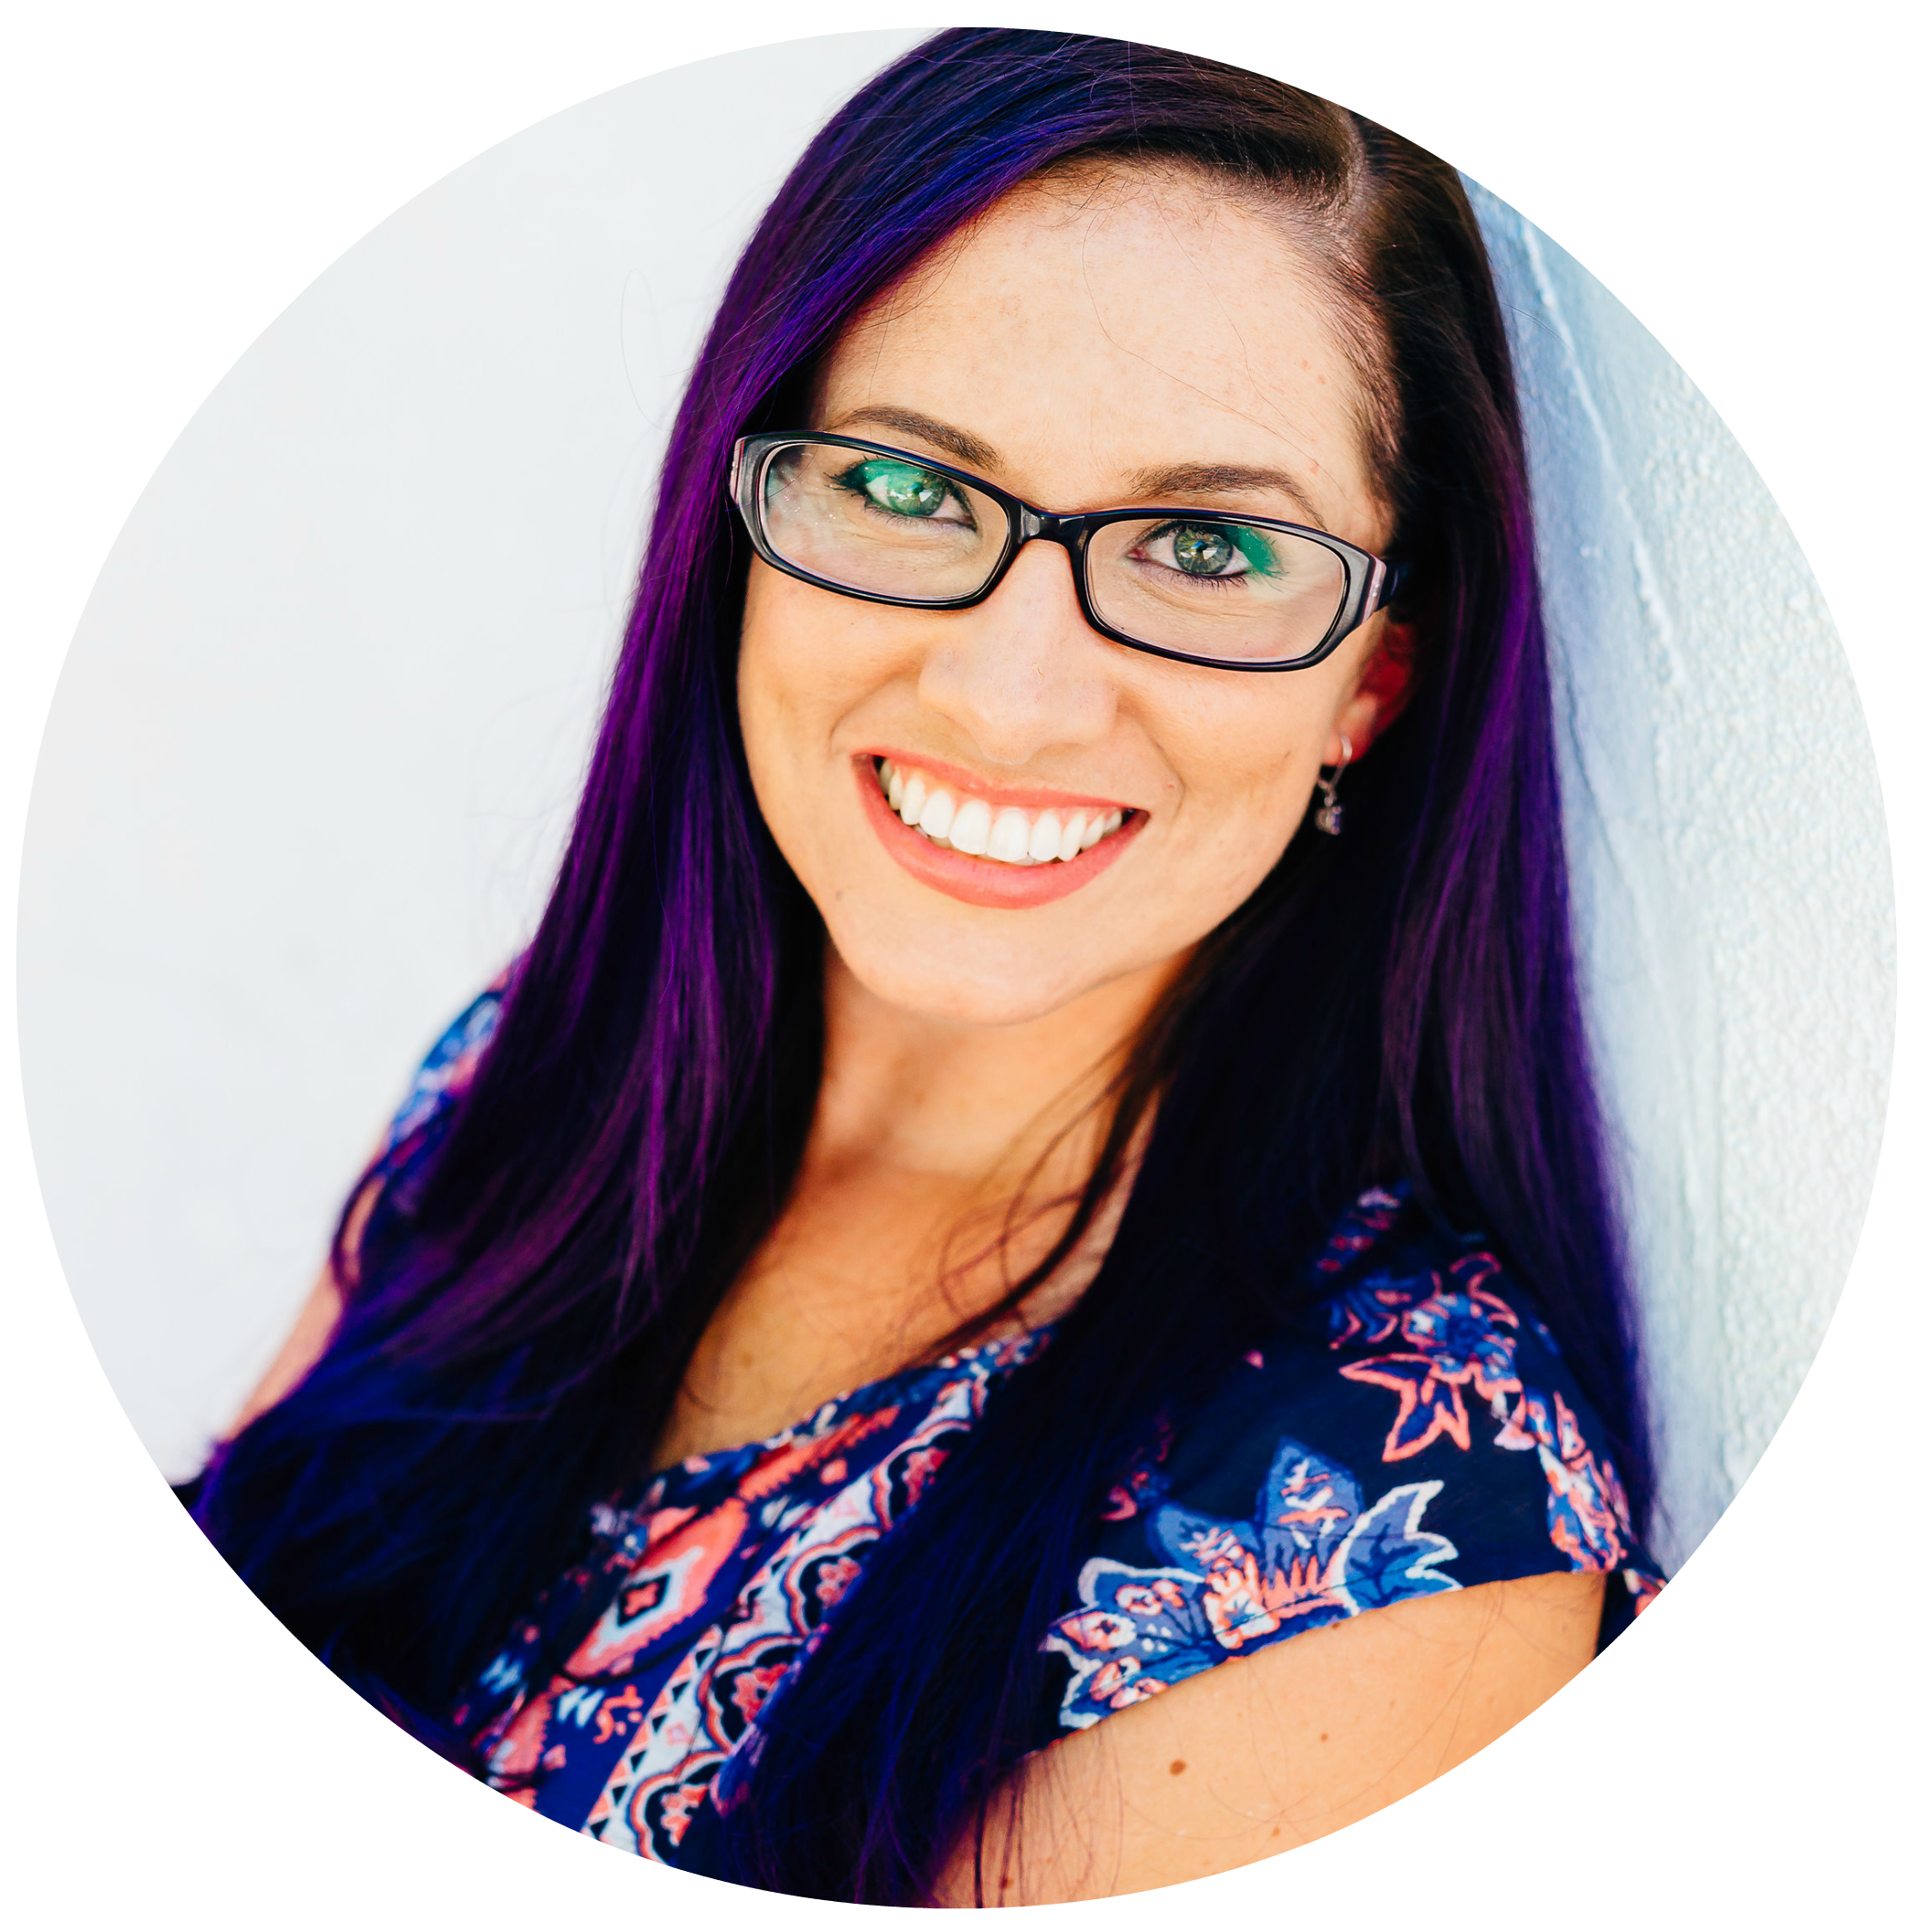 Jessica Rasdall | Motivational Speaker and Coach to Creative Business Owners